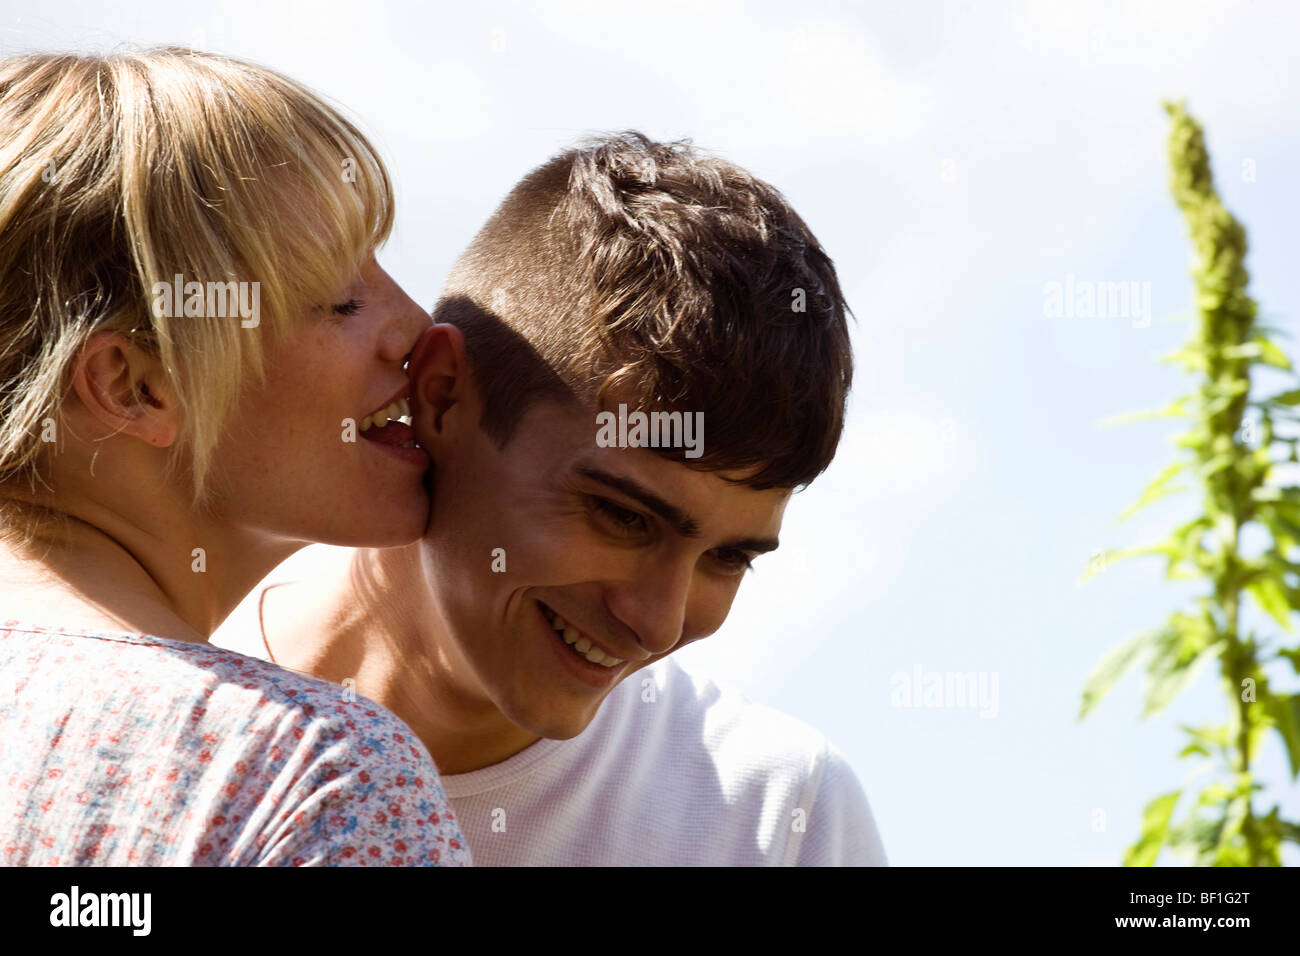 A young woman playfully licking a young man's ear - Stock Image